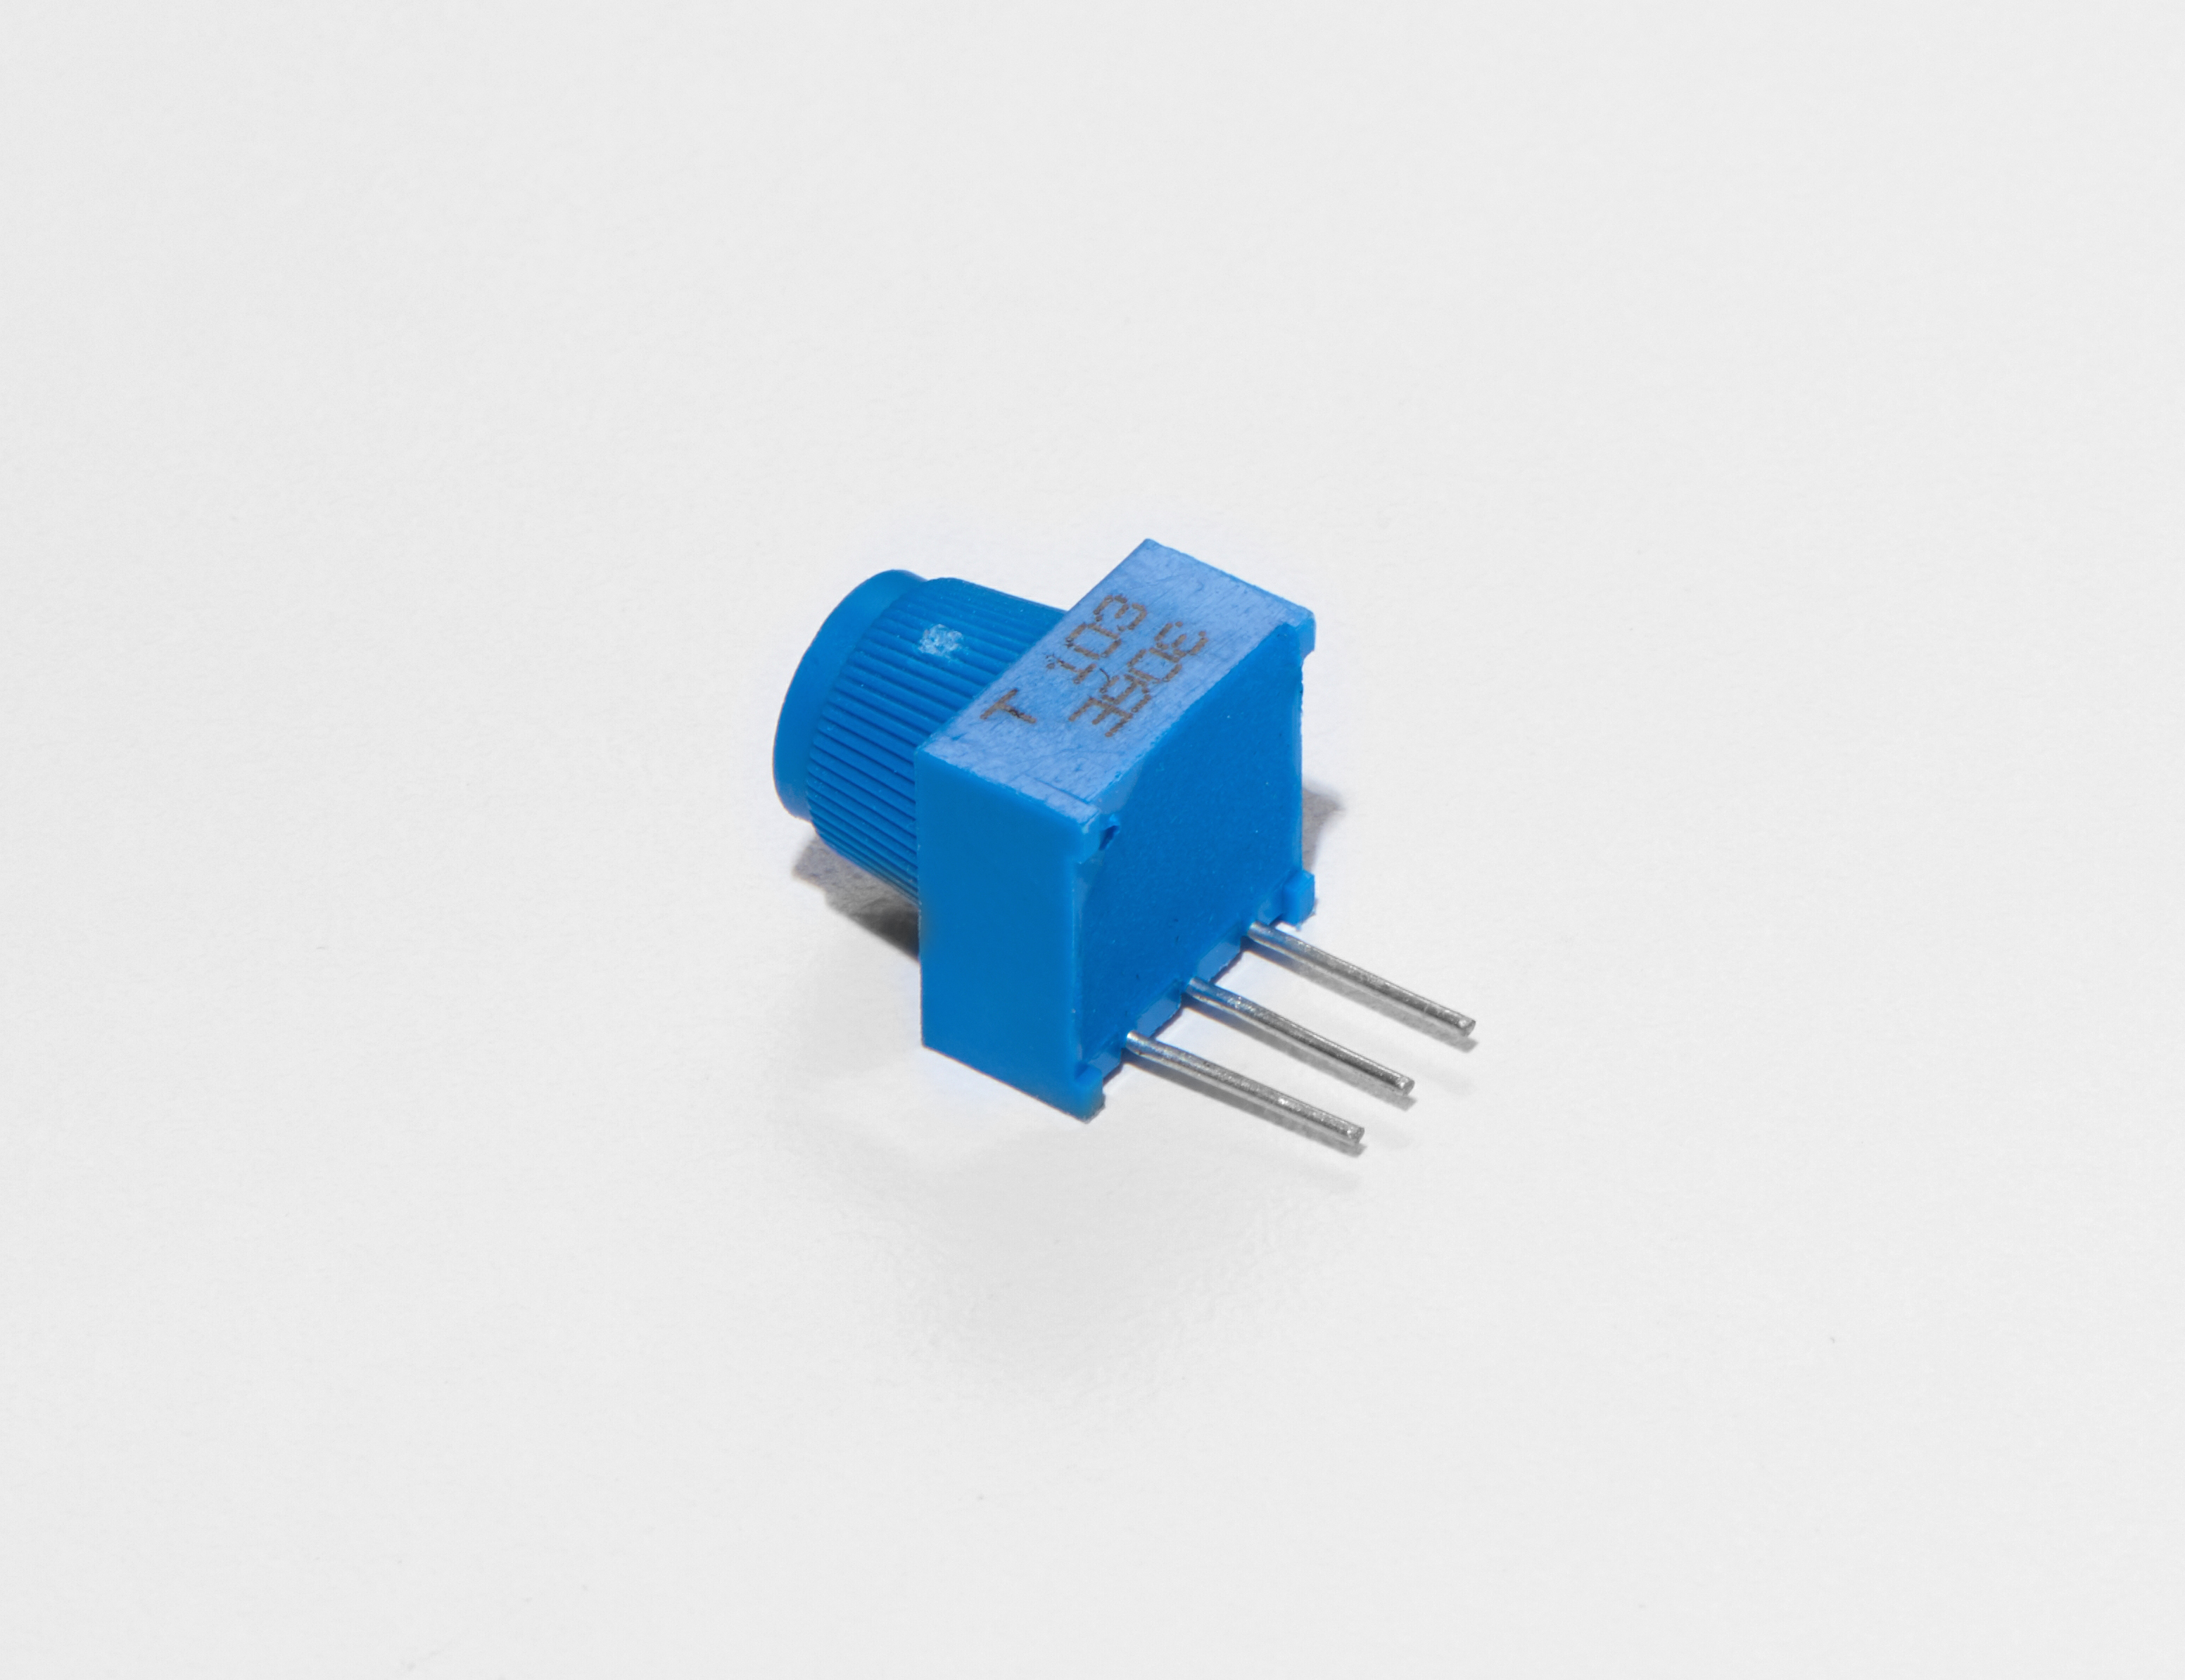 sensors_Potentiometer_White_Background_ORIG.jpg